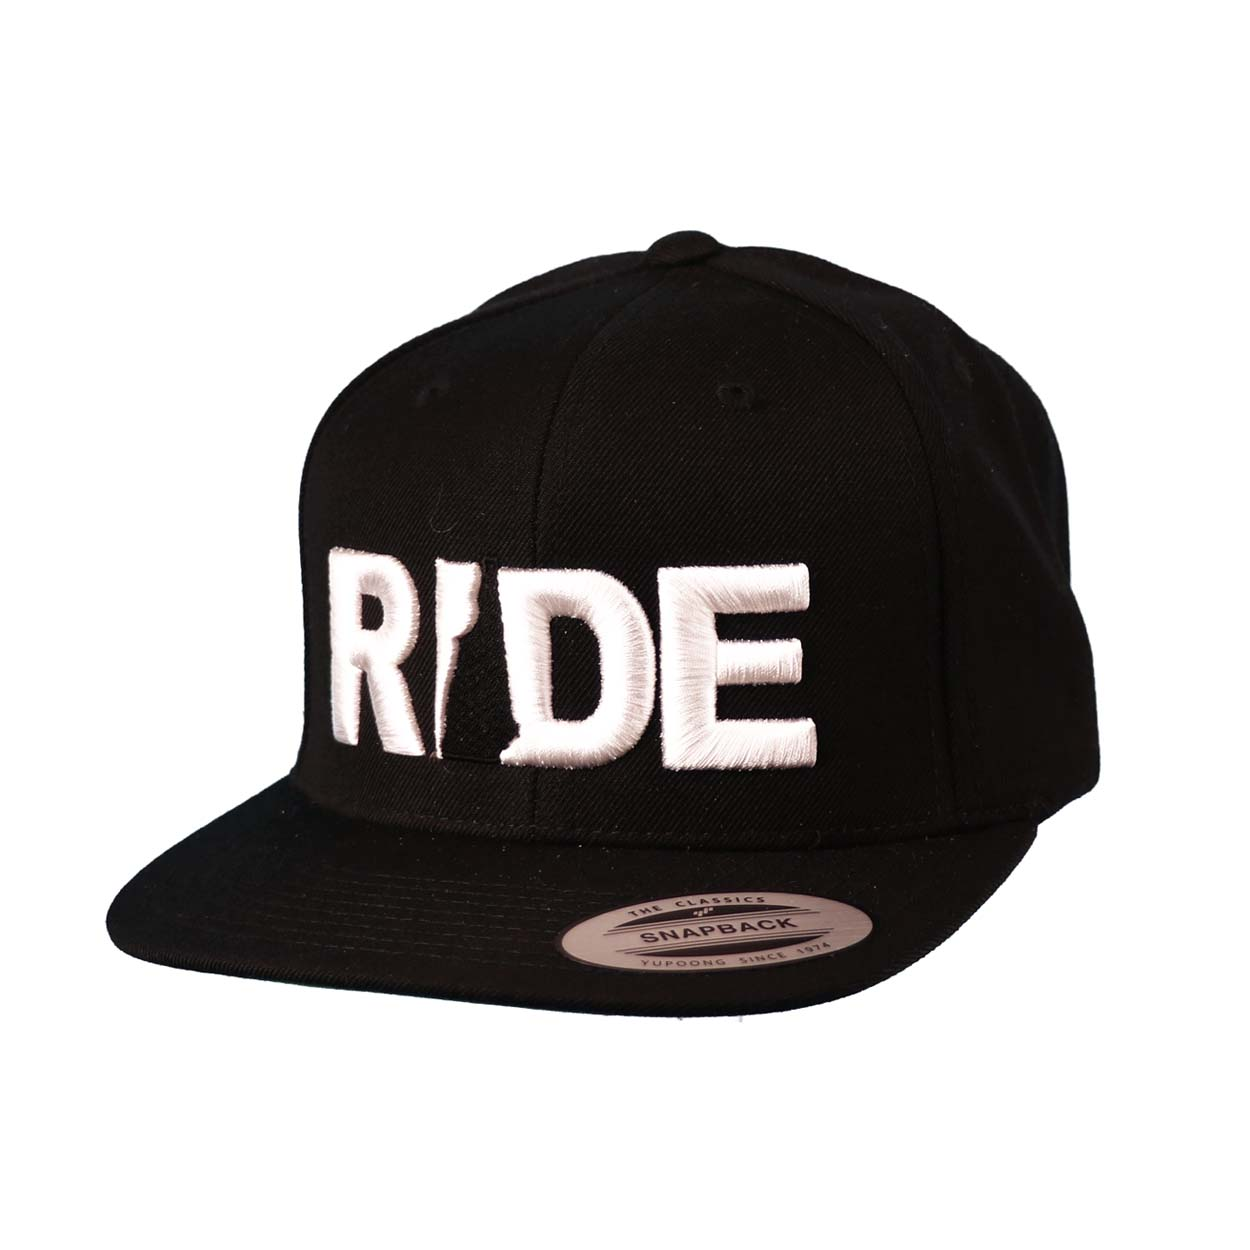 Ride New Hampshire Classic Embroidered  Snapback Flat Brim Hat Black/White